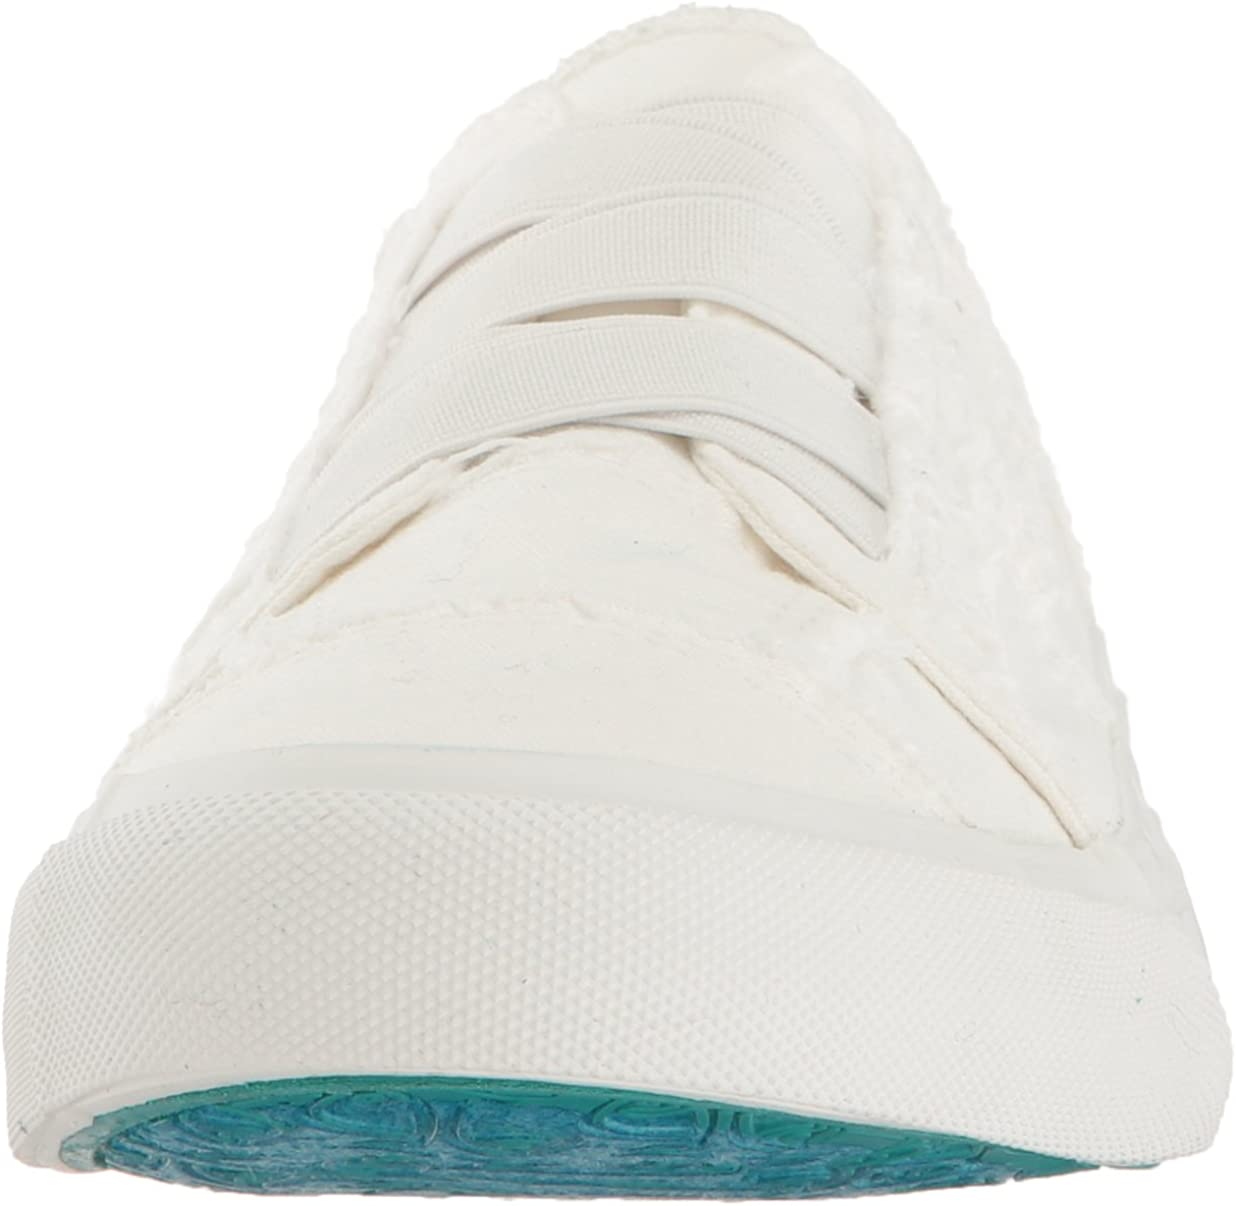 Blowfish Womens Marley Fashion Sneaker White Color Washed Canvas 8.5 M US